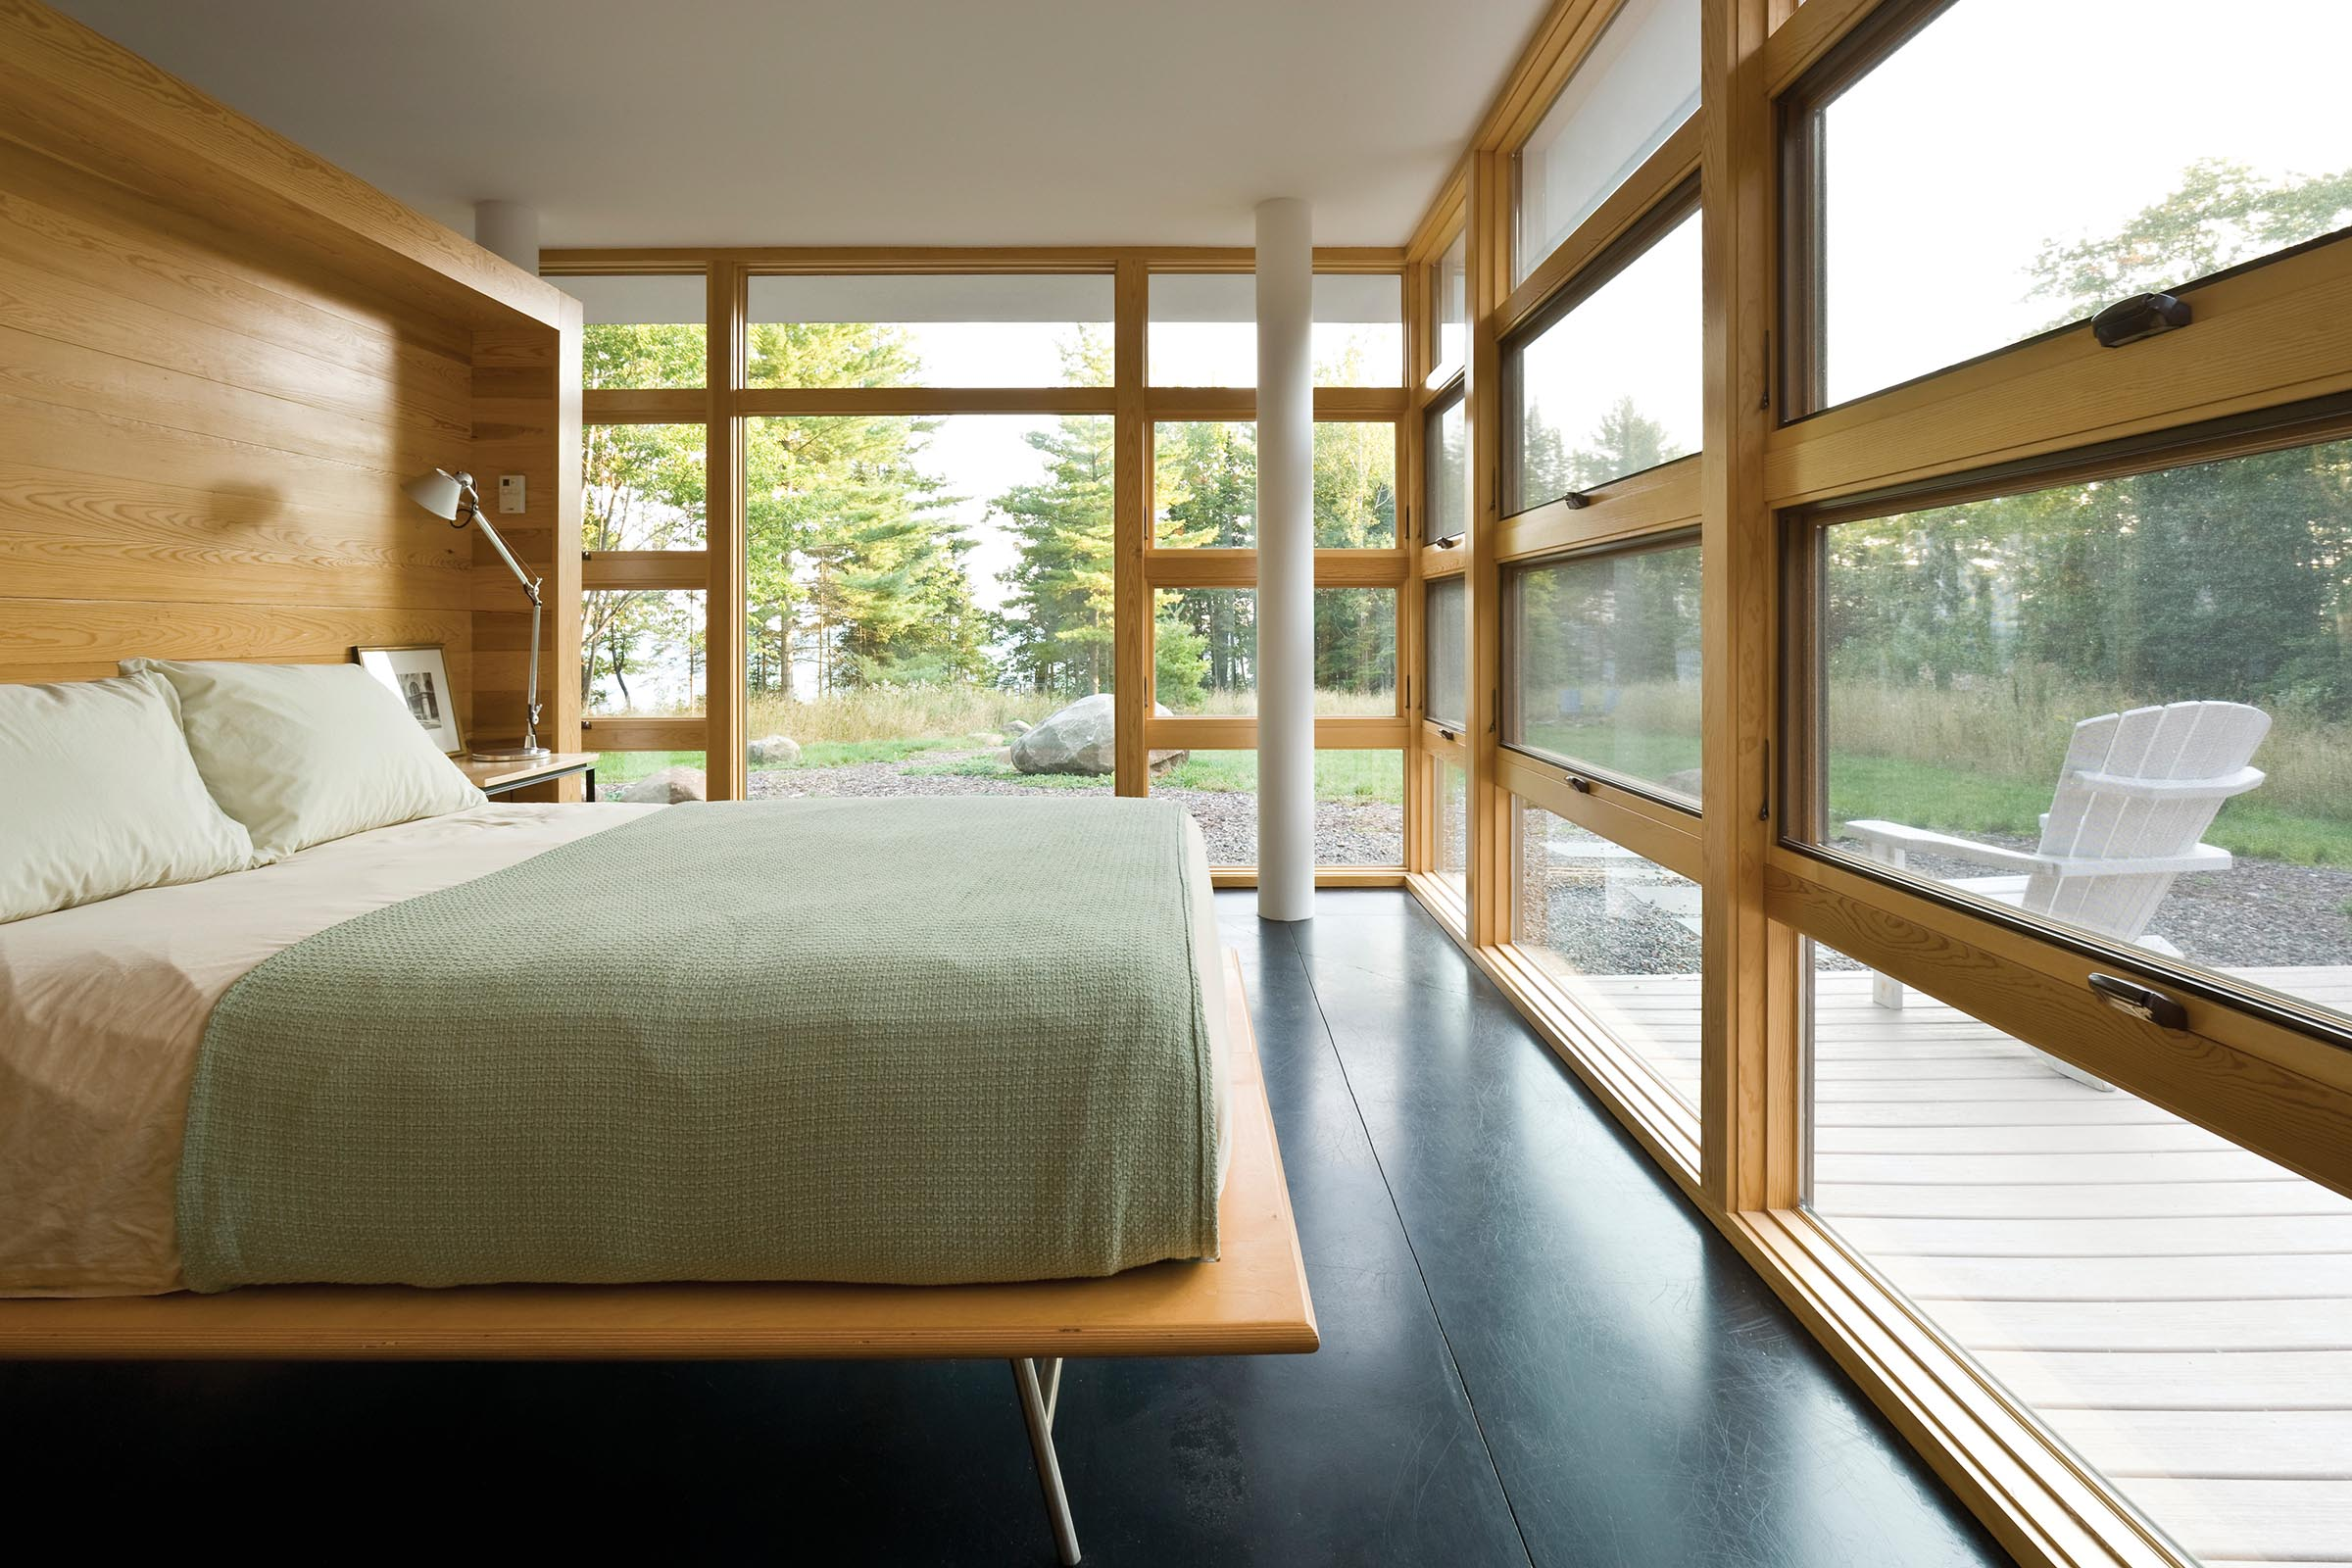 E-Series Awning and Picture Windows With Pine Interiors